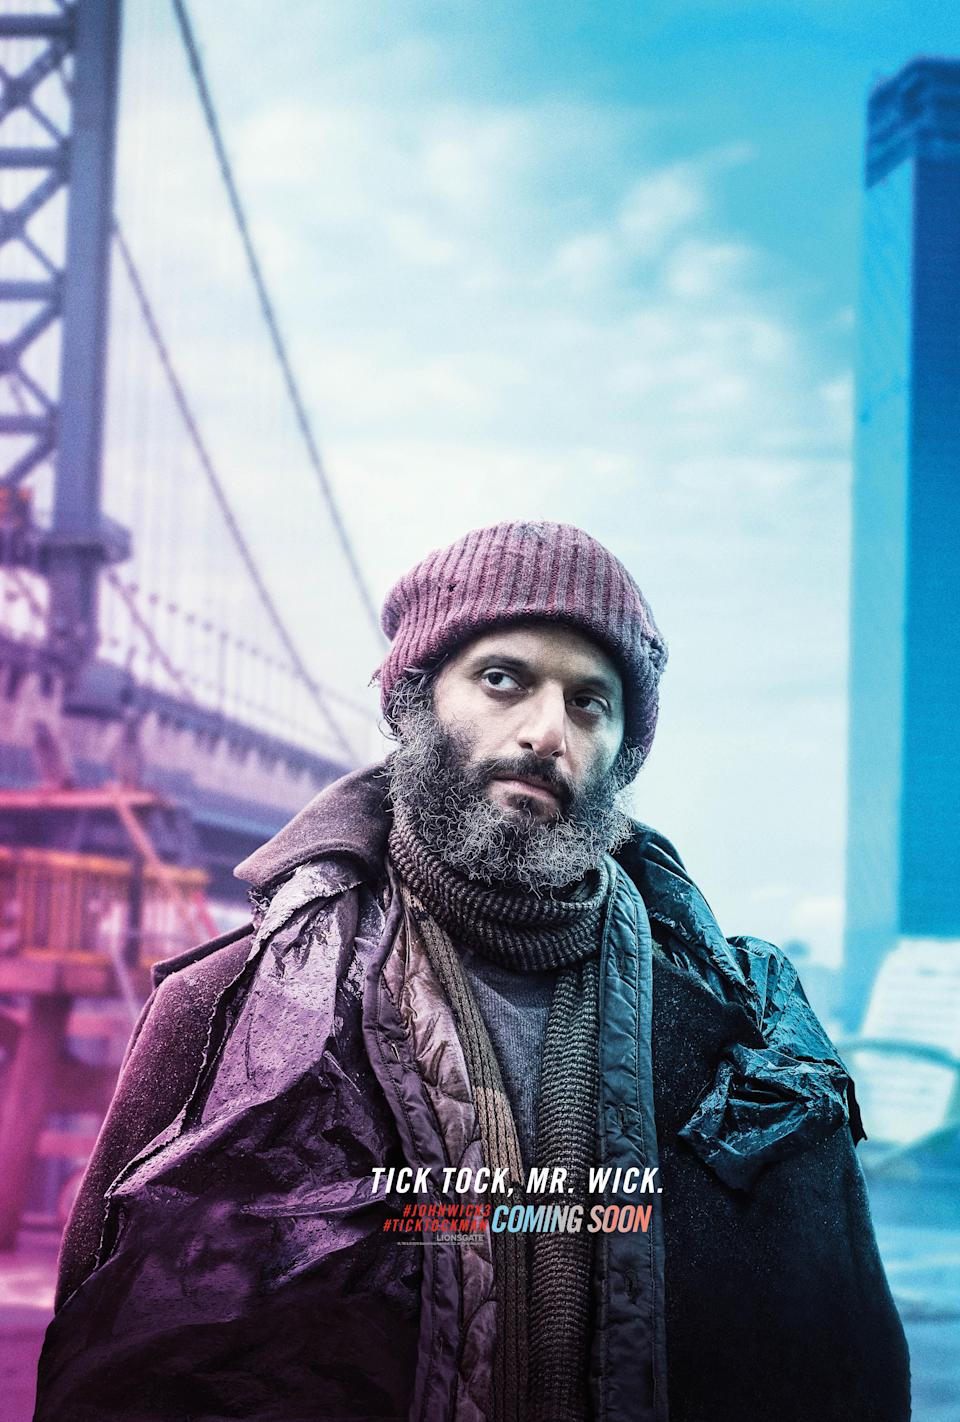 <p>Mantzoukas is primarily known for his comedy roles, so it's interesting to see him associated with such a threatening tagline with his new character's name. Could he be playing against type as a dangerous assassin? </p>